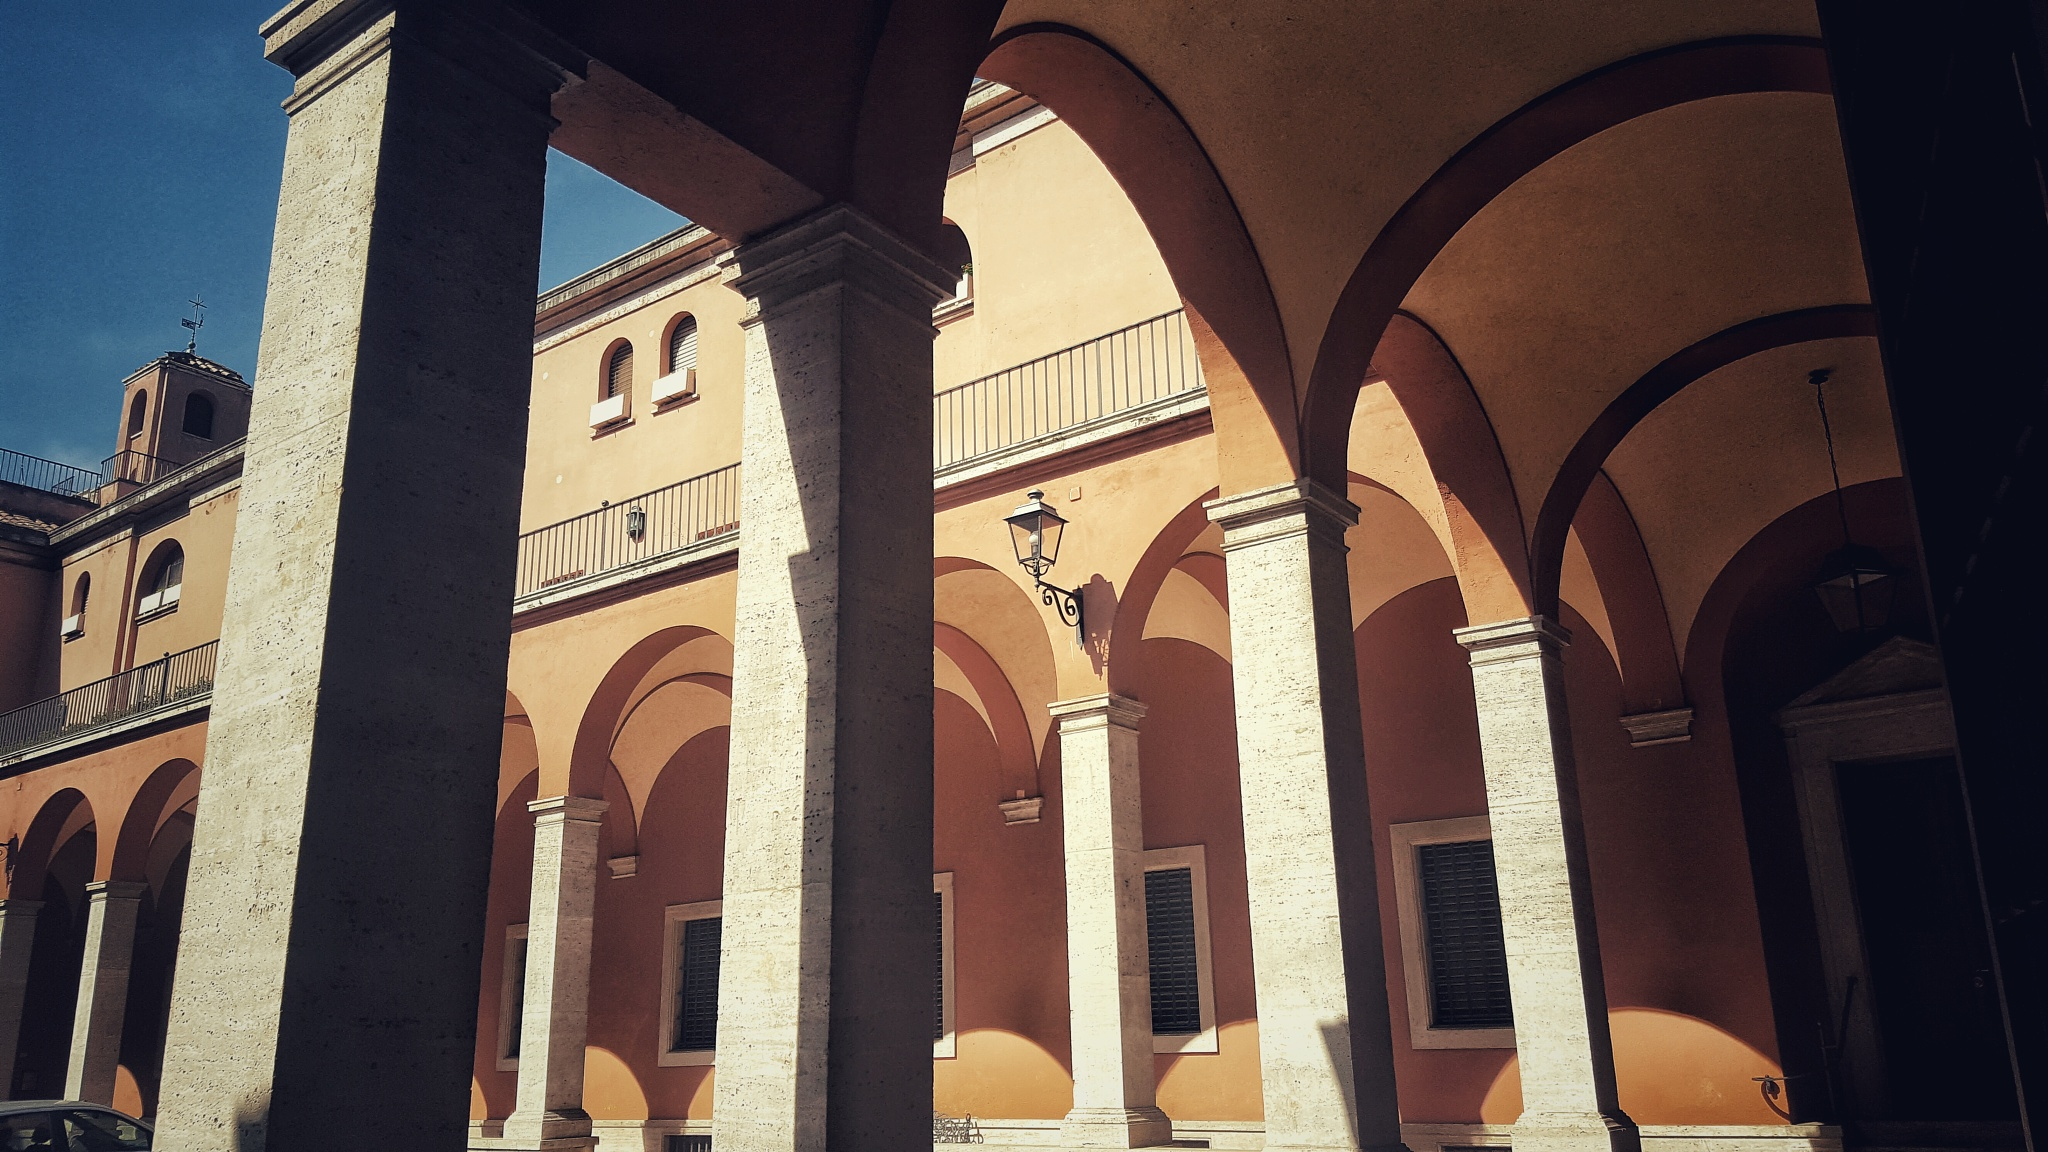 Cloister in Rome by Sergio Cavaliere